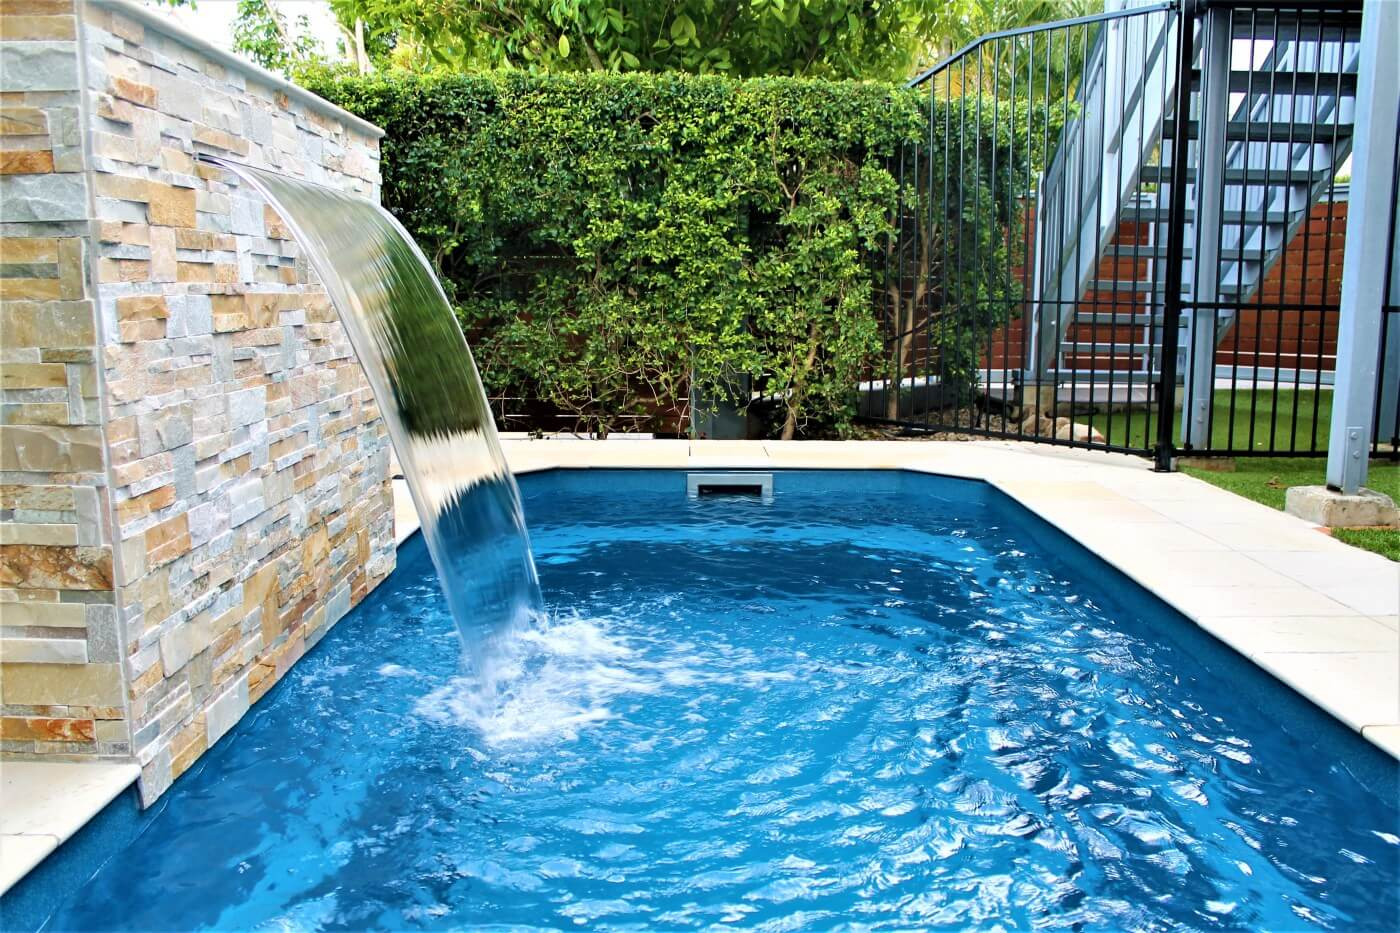 Fibreglass swimming pools pool shapes compass pools for Pool design tips